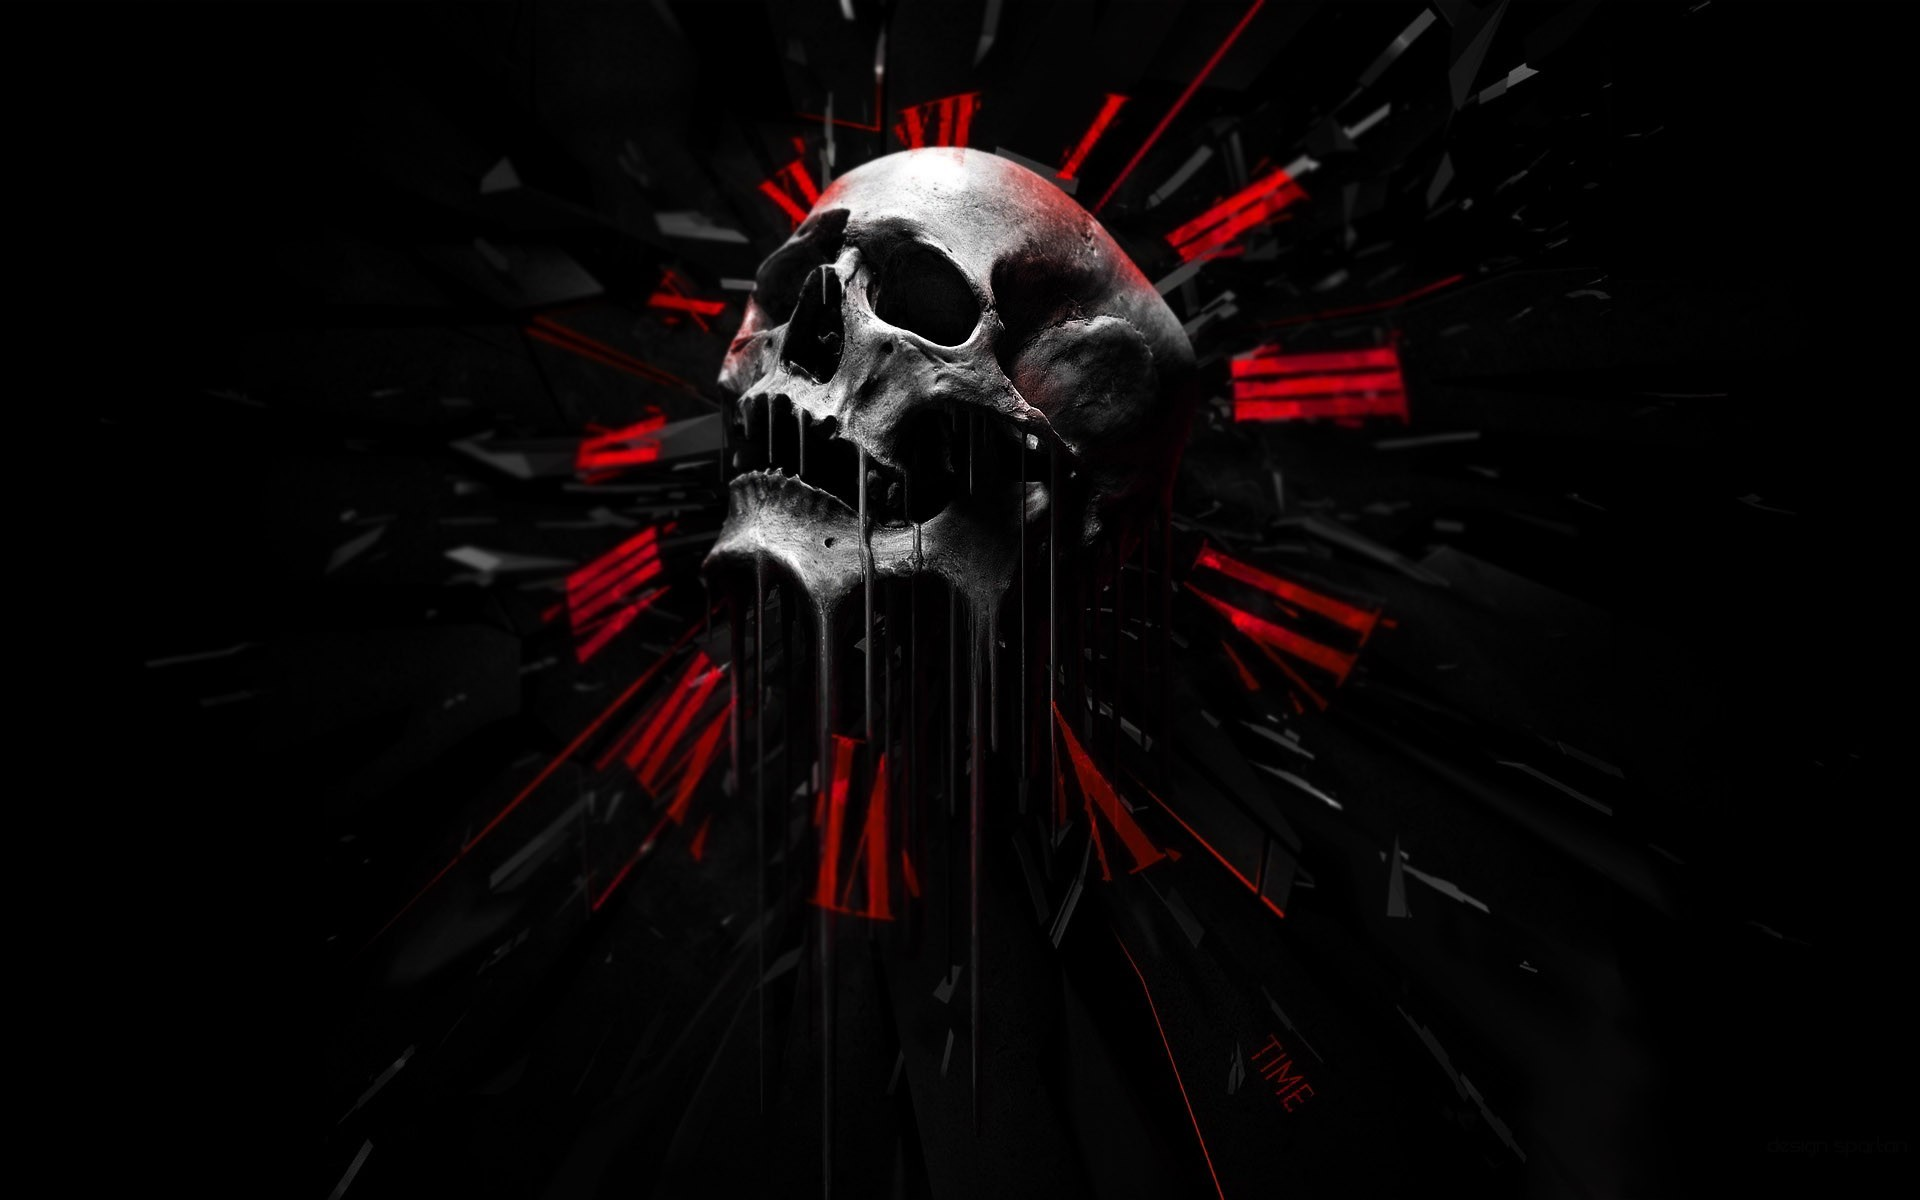 Cool Black And Red Wallpaper For Pc